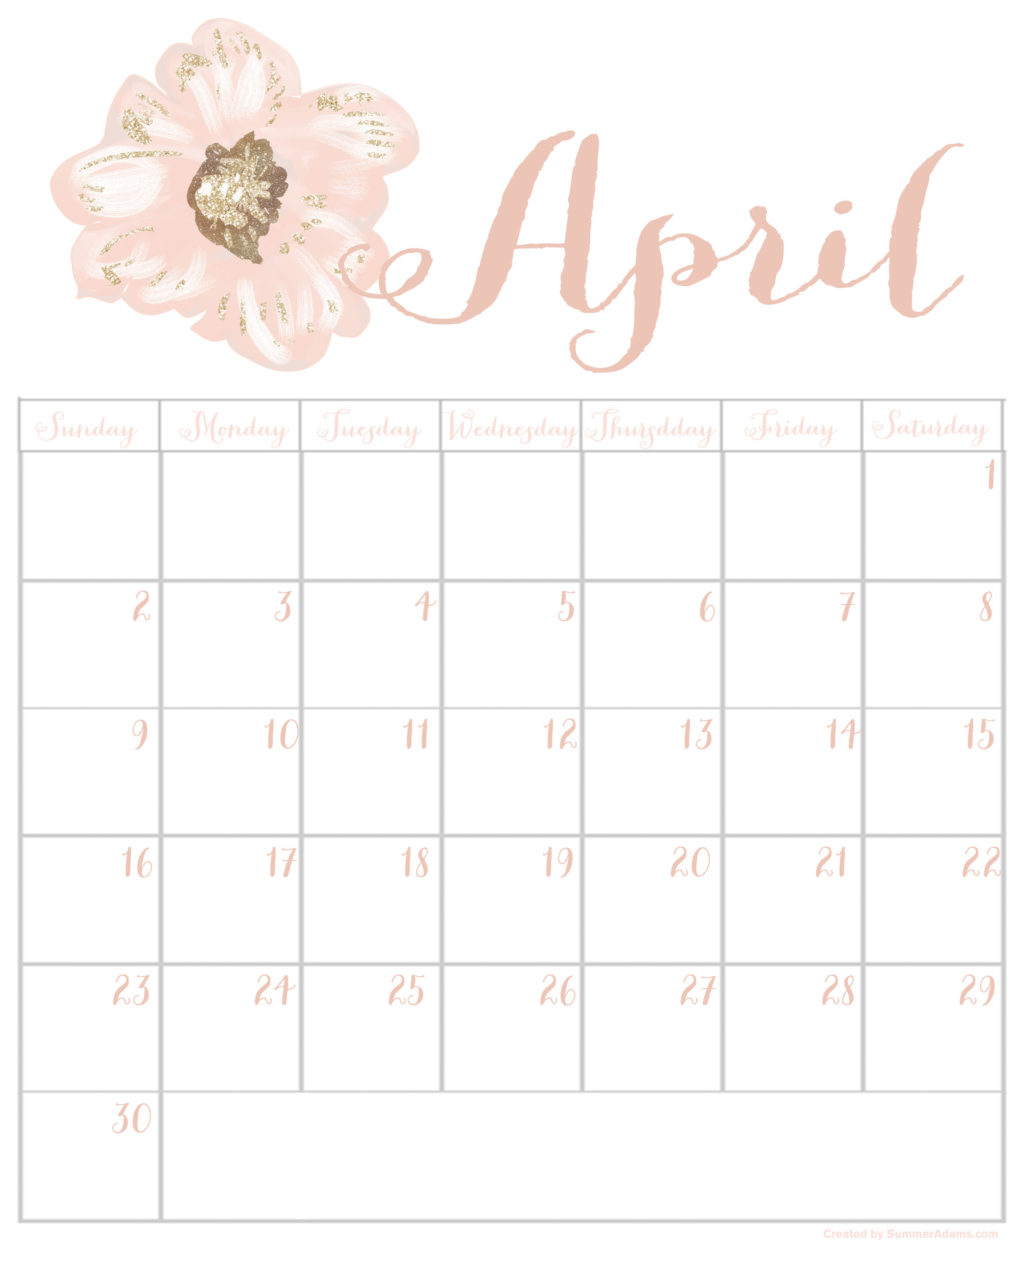 graphic relating to Printable Calendar April referred to as Totally free April 2017 Printable Calendar - Summer season Adams